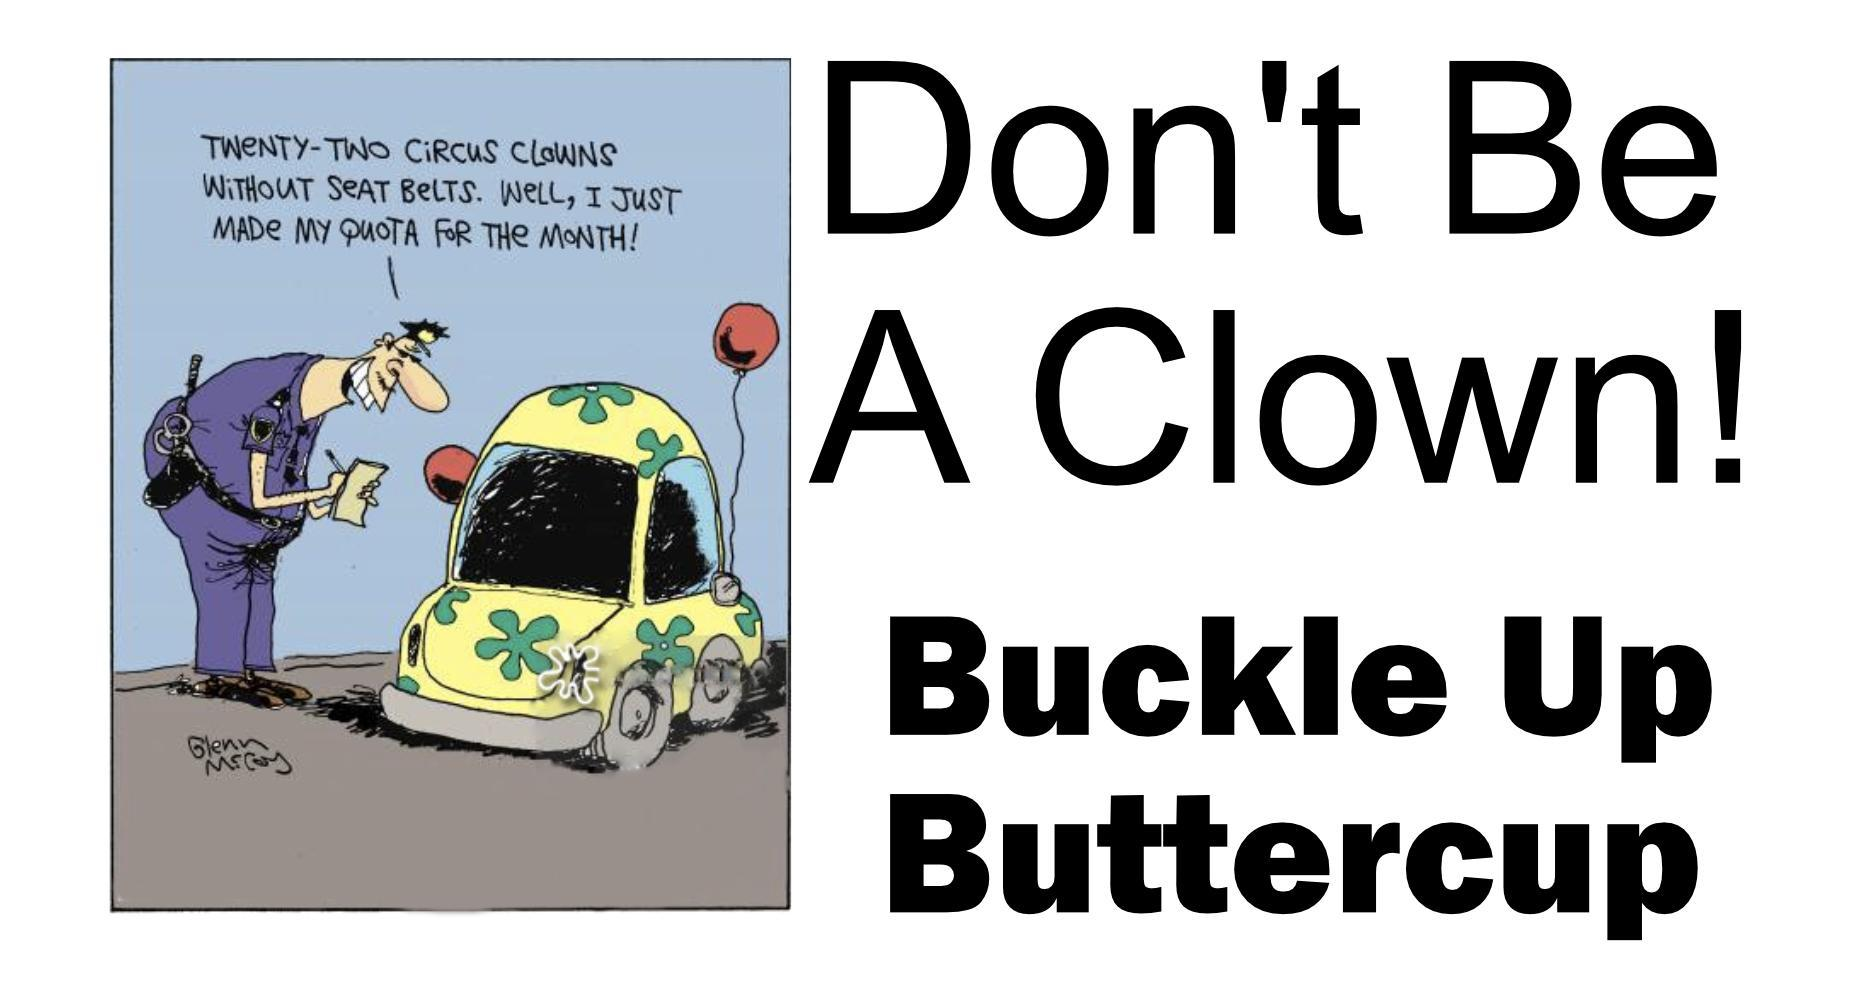 Don't Be a Clown - Buckle Up